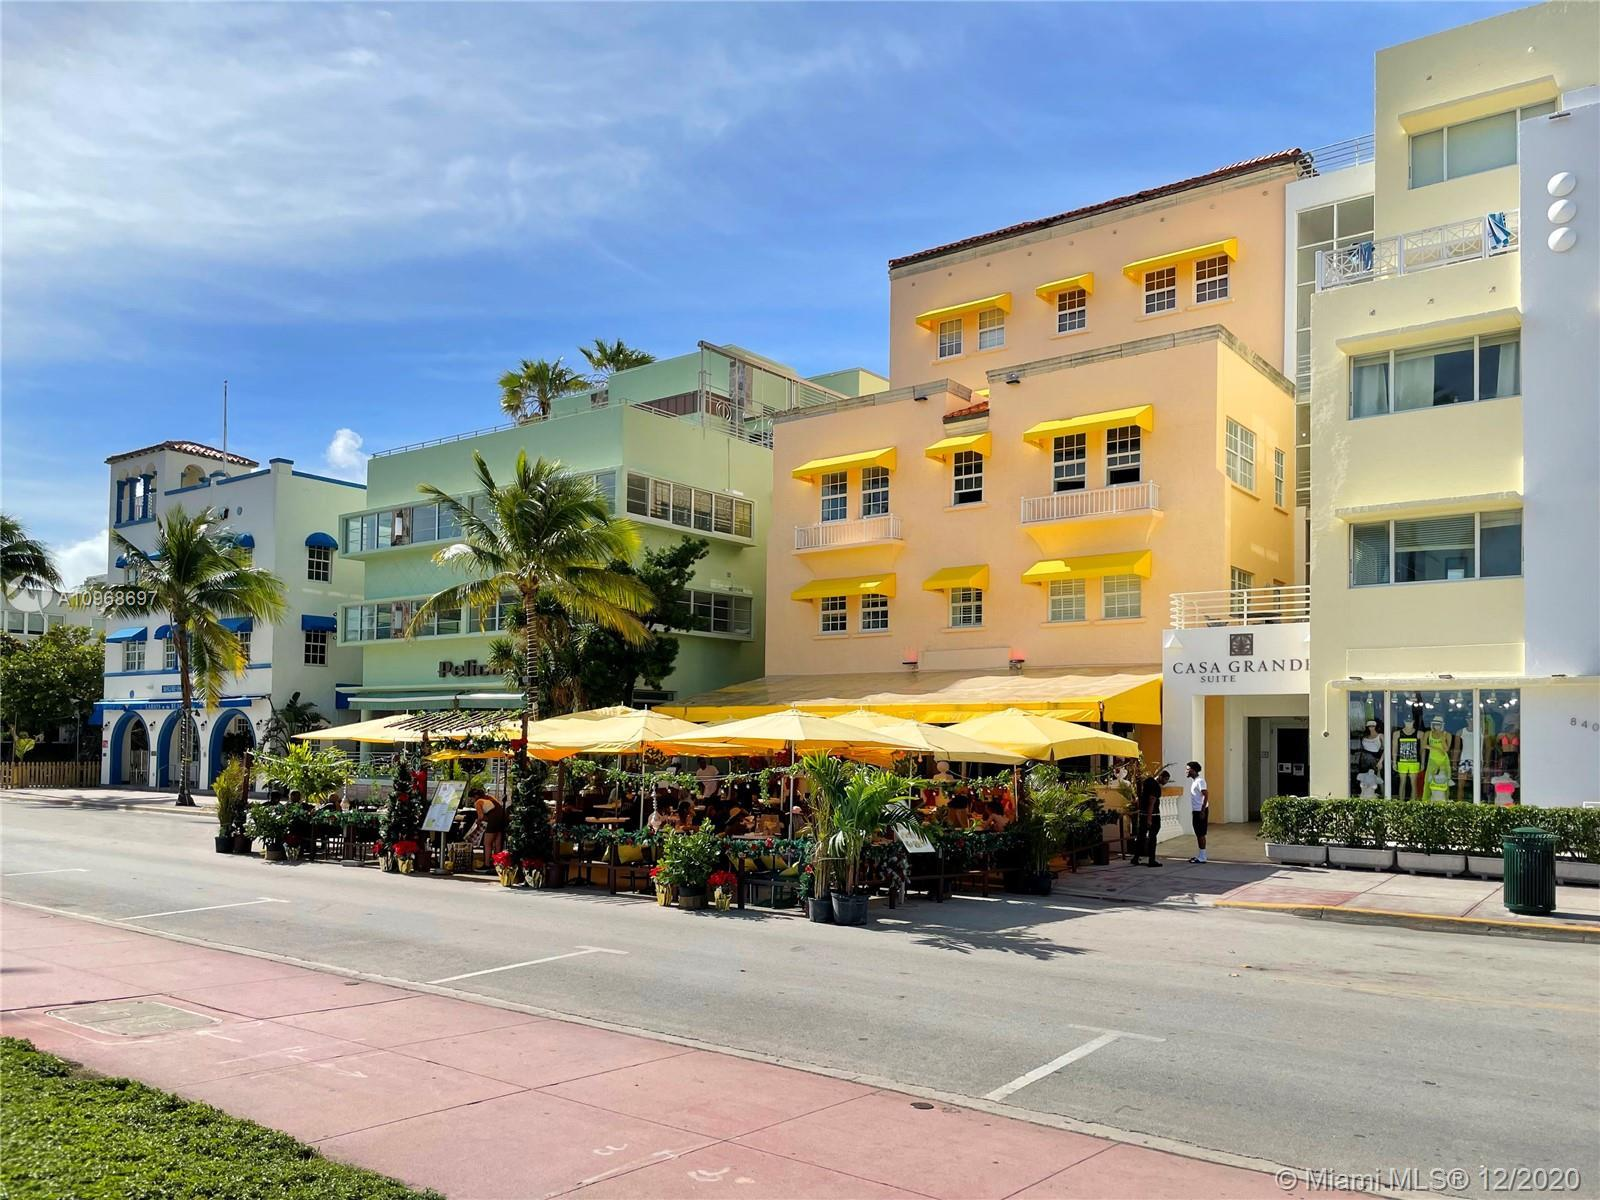 Situated on world-famous Ocean Drive, this condo complex offers a modern and stylish living experien